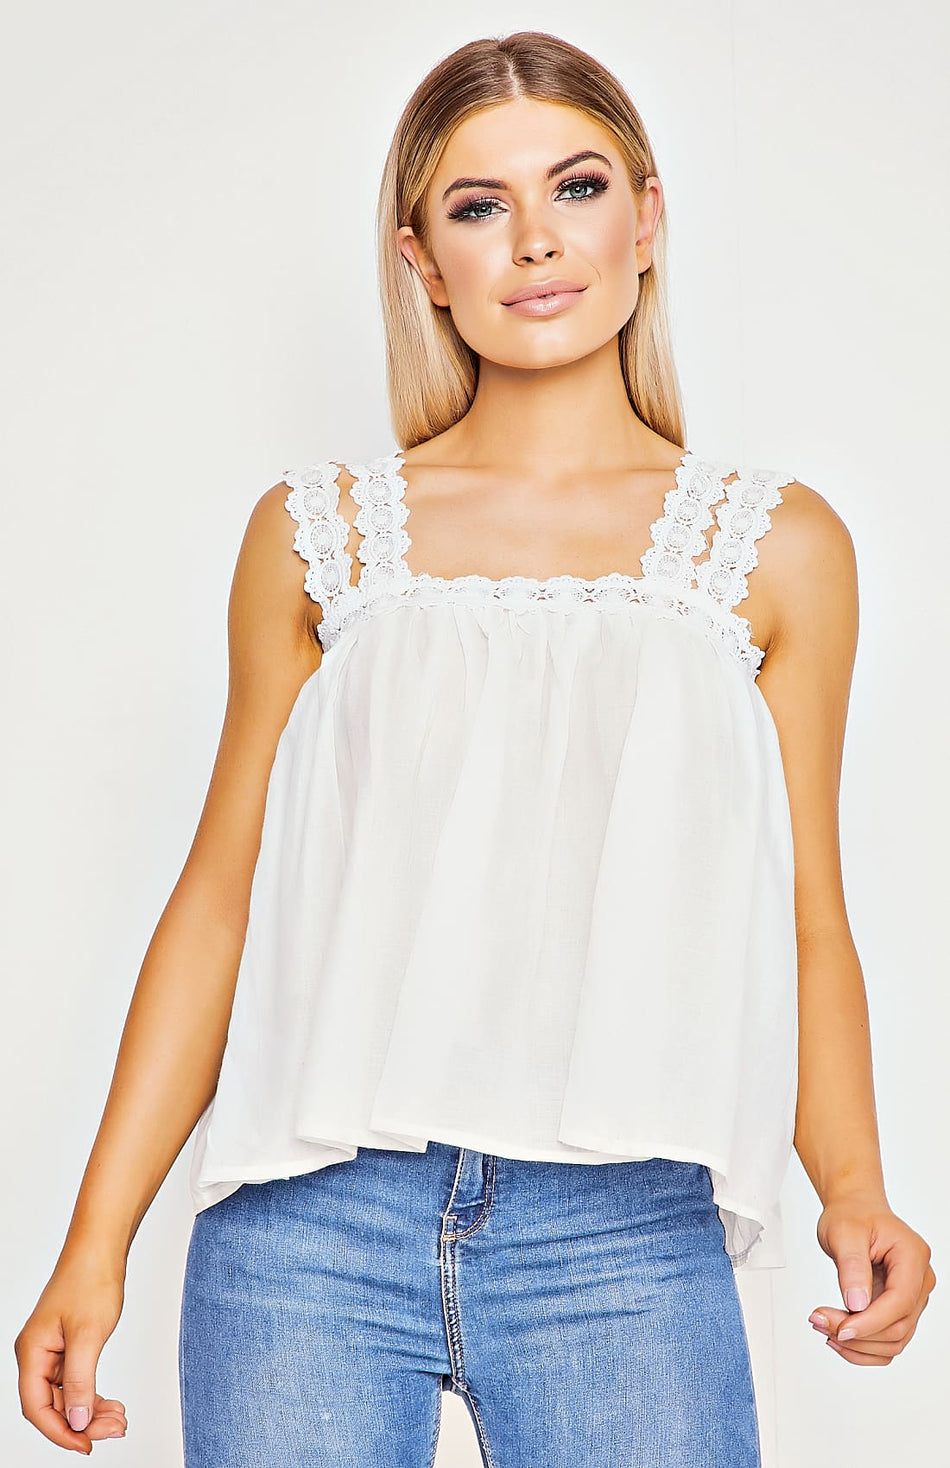 Top con tracolla in pizzo bianco